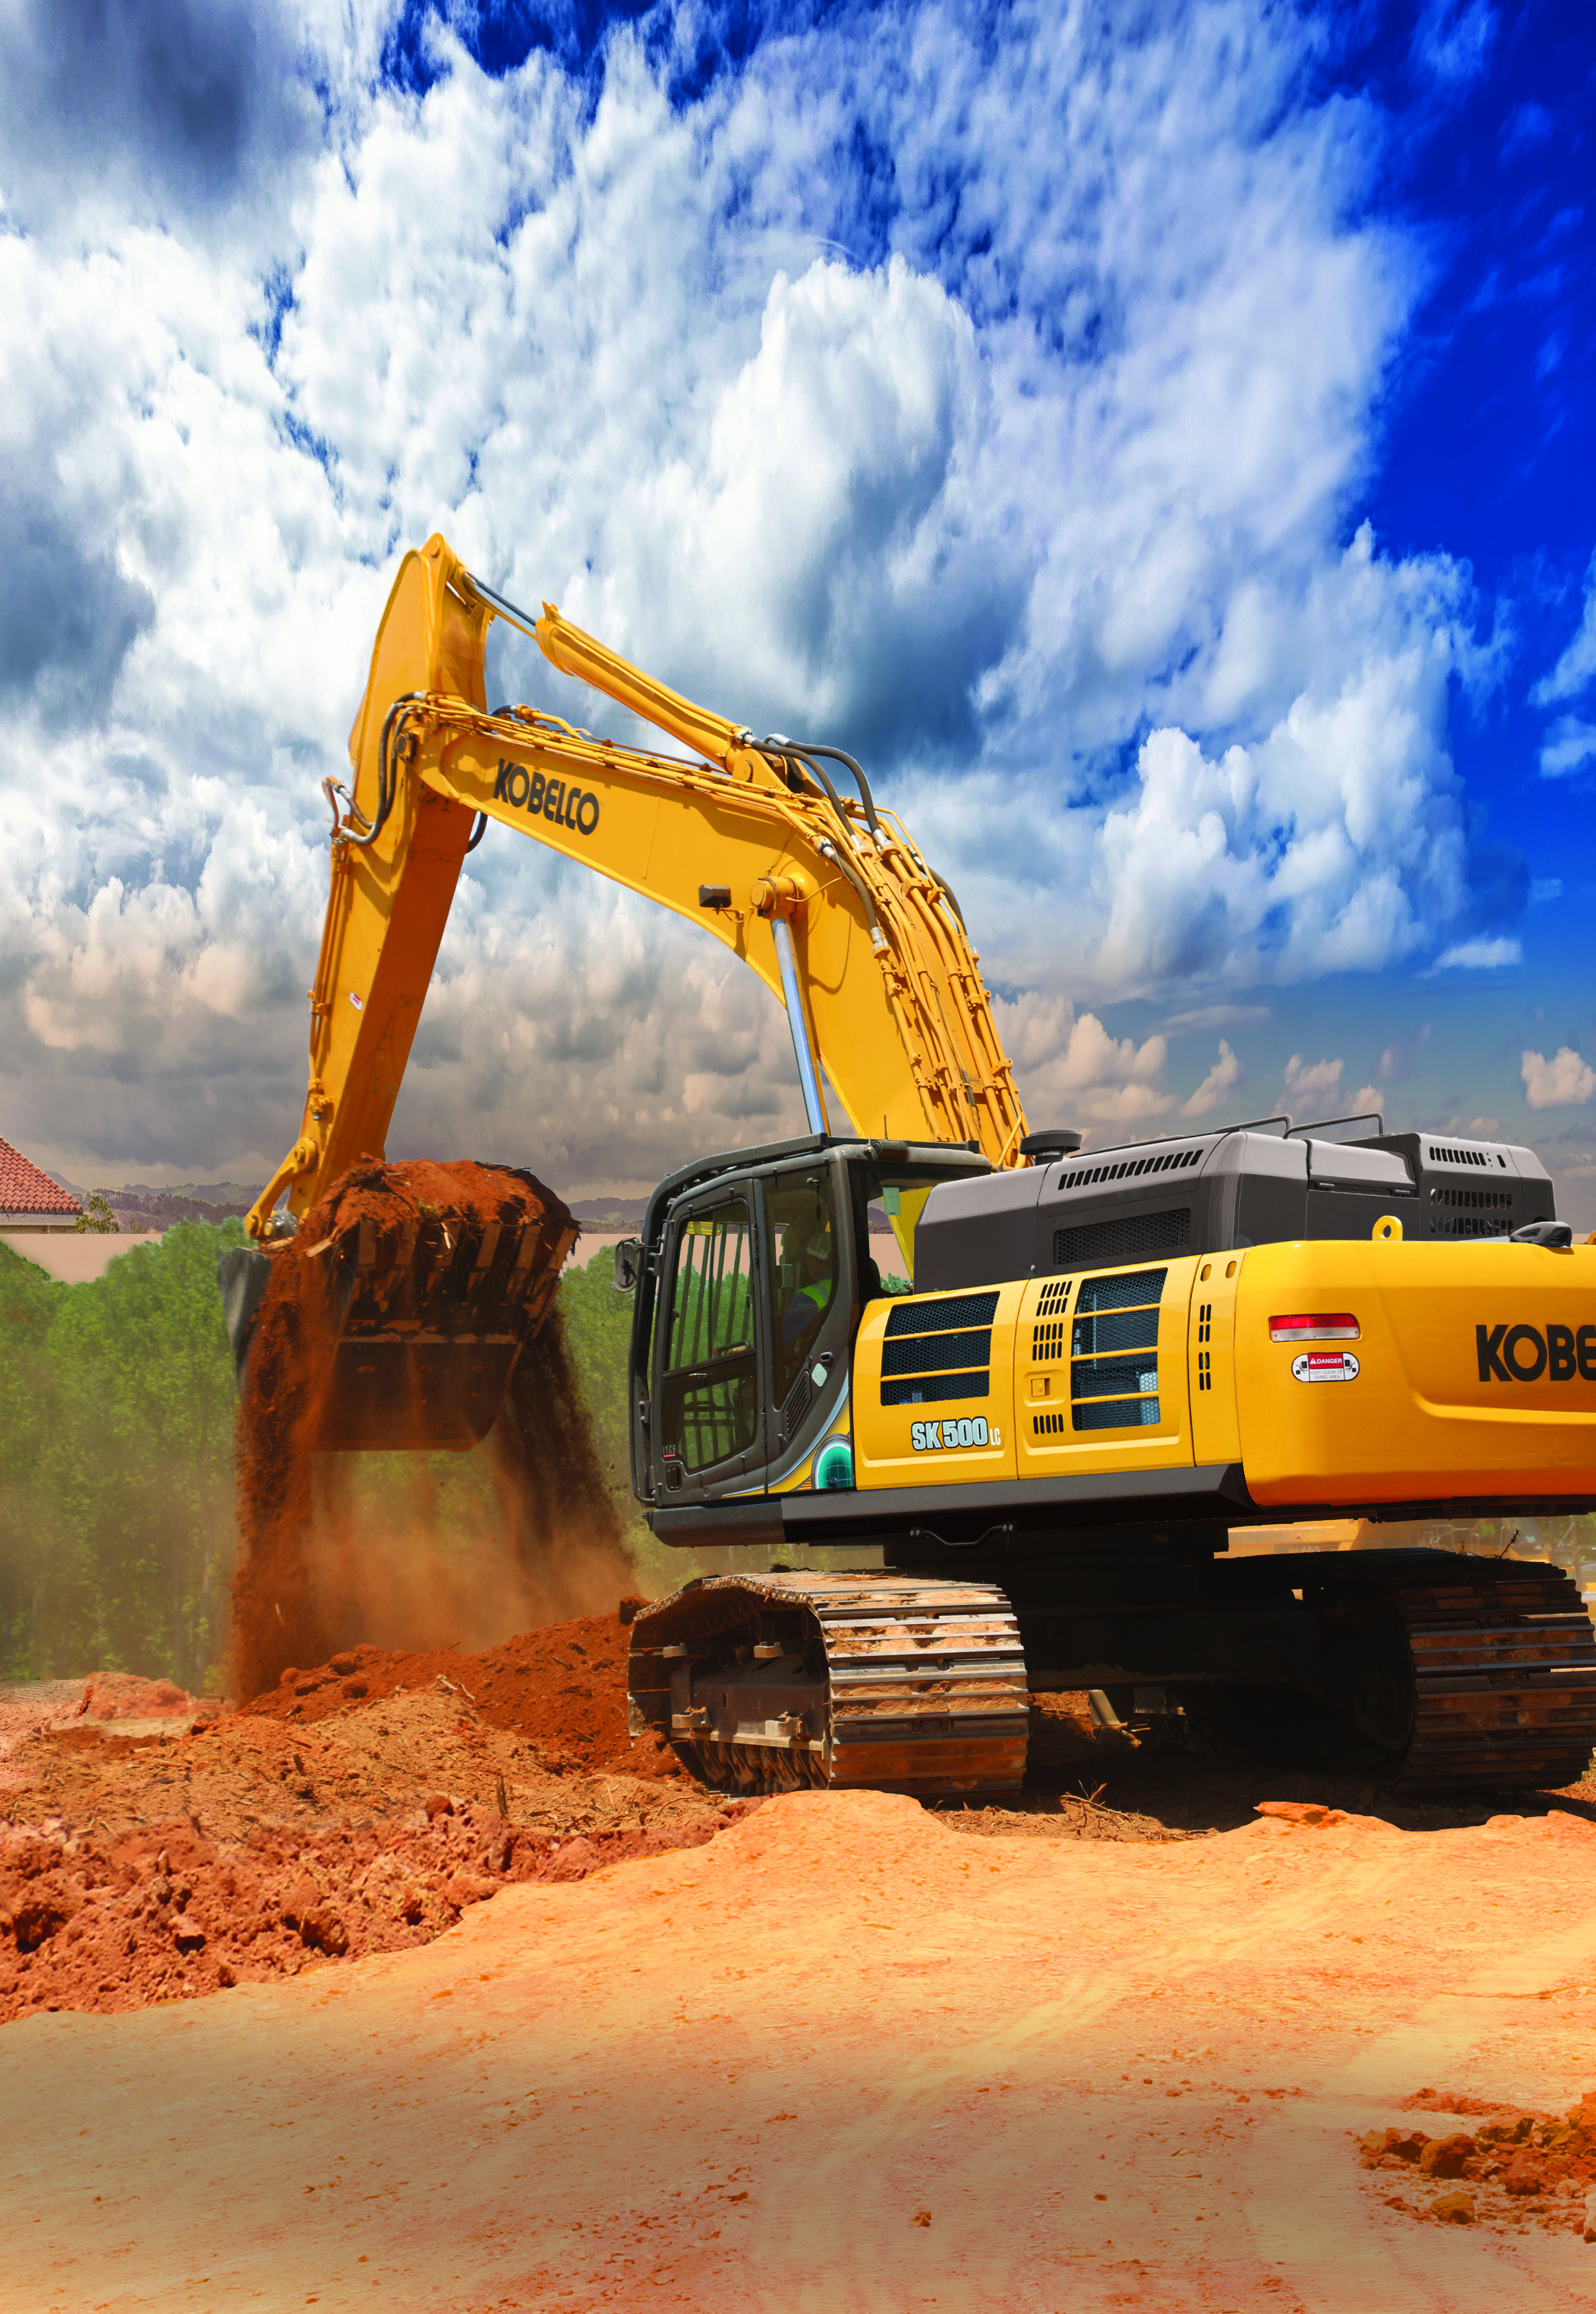 Kobelco Sk 500 Lc 10 Specifications 2016 2018 Lectura Specs Sk210 Wiring Diagram Show More Less